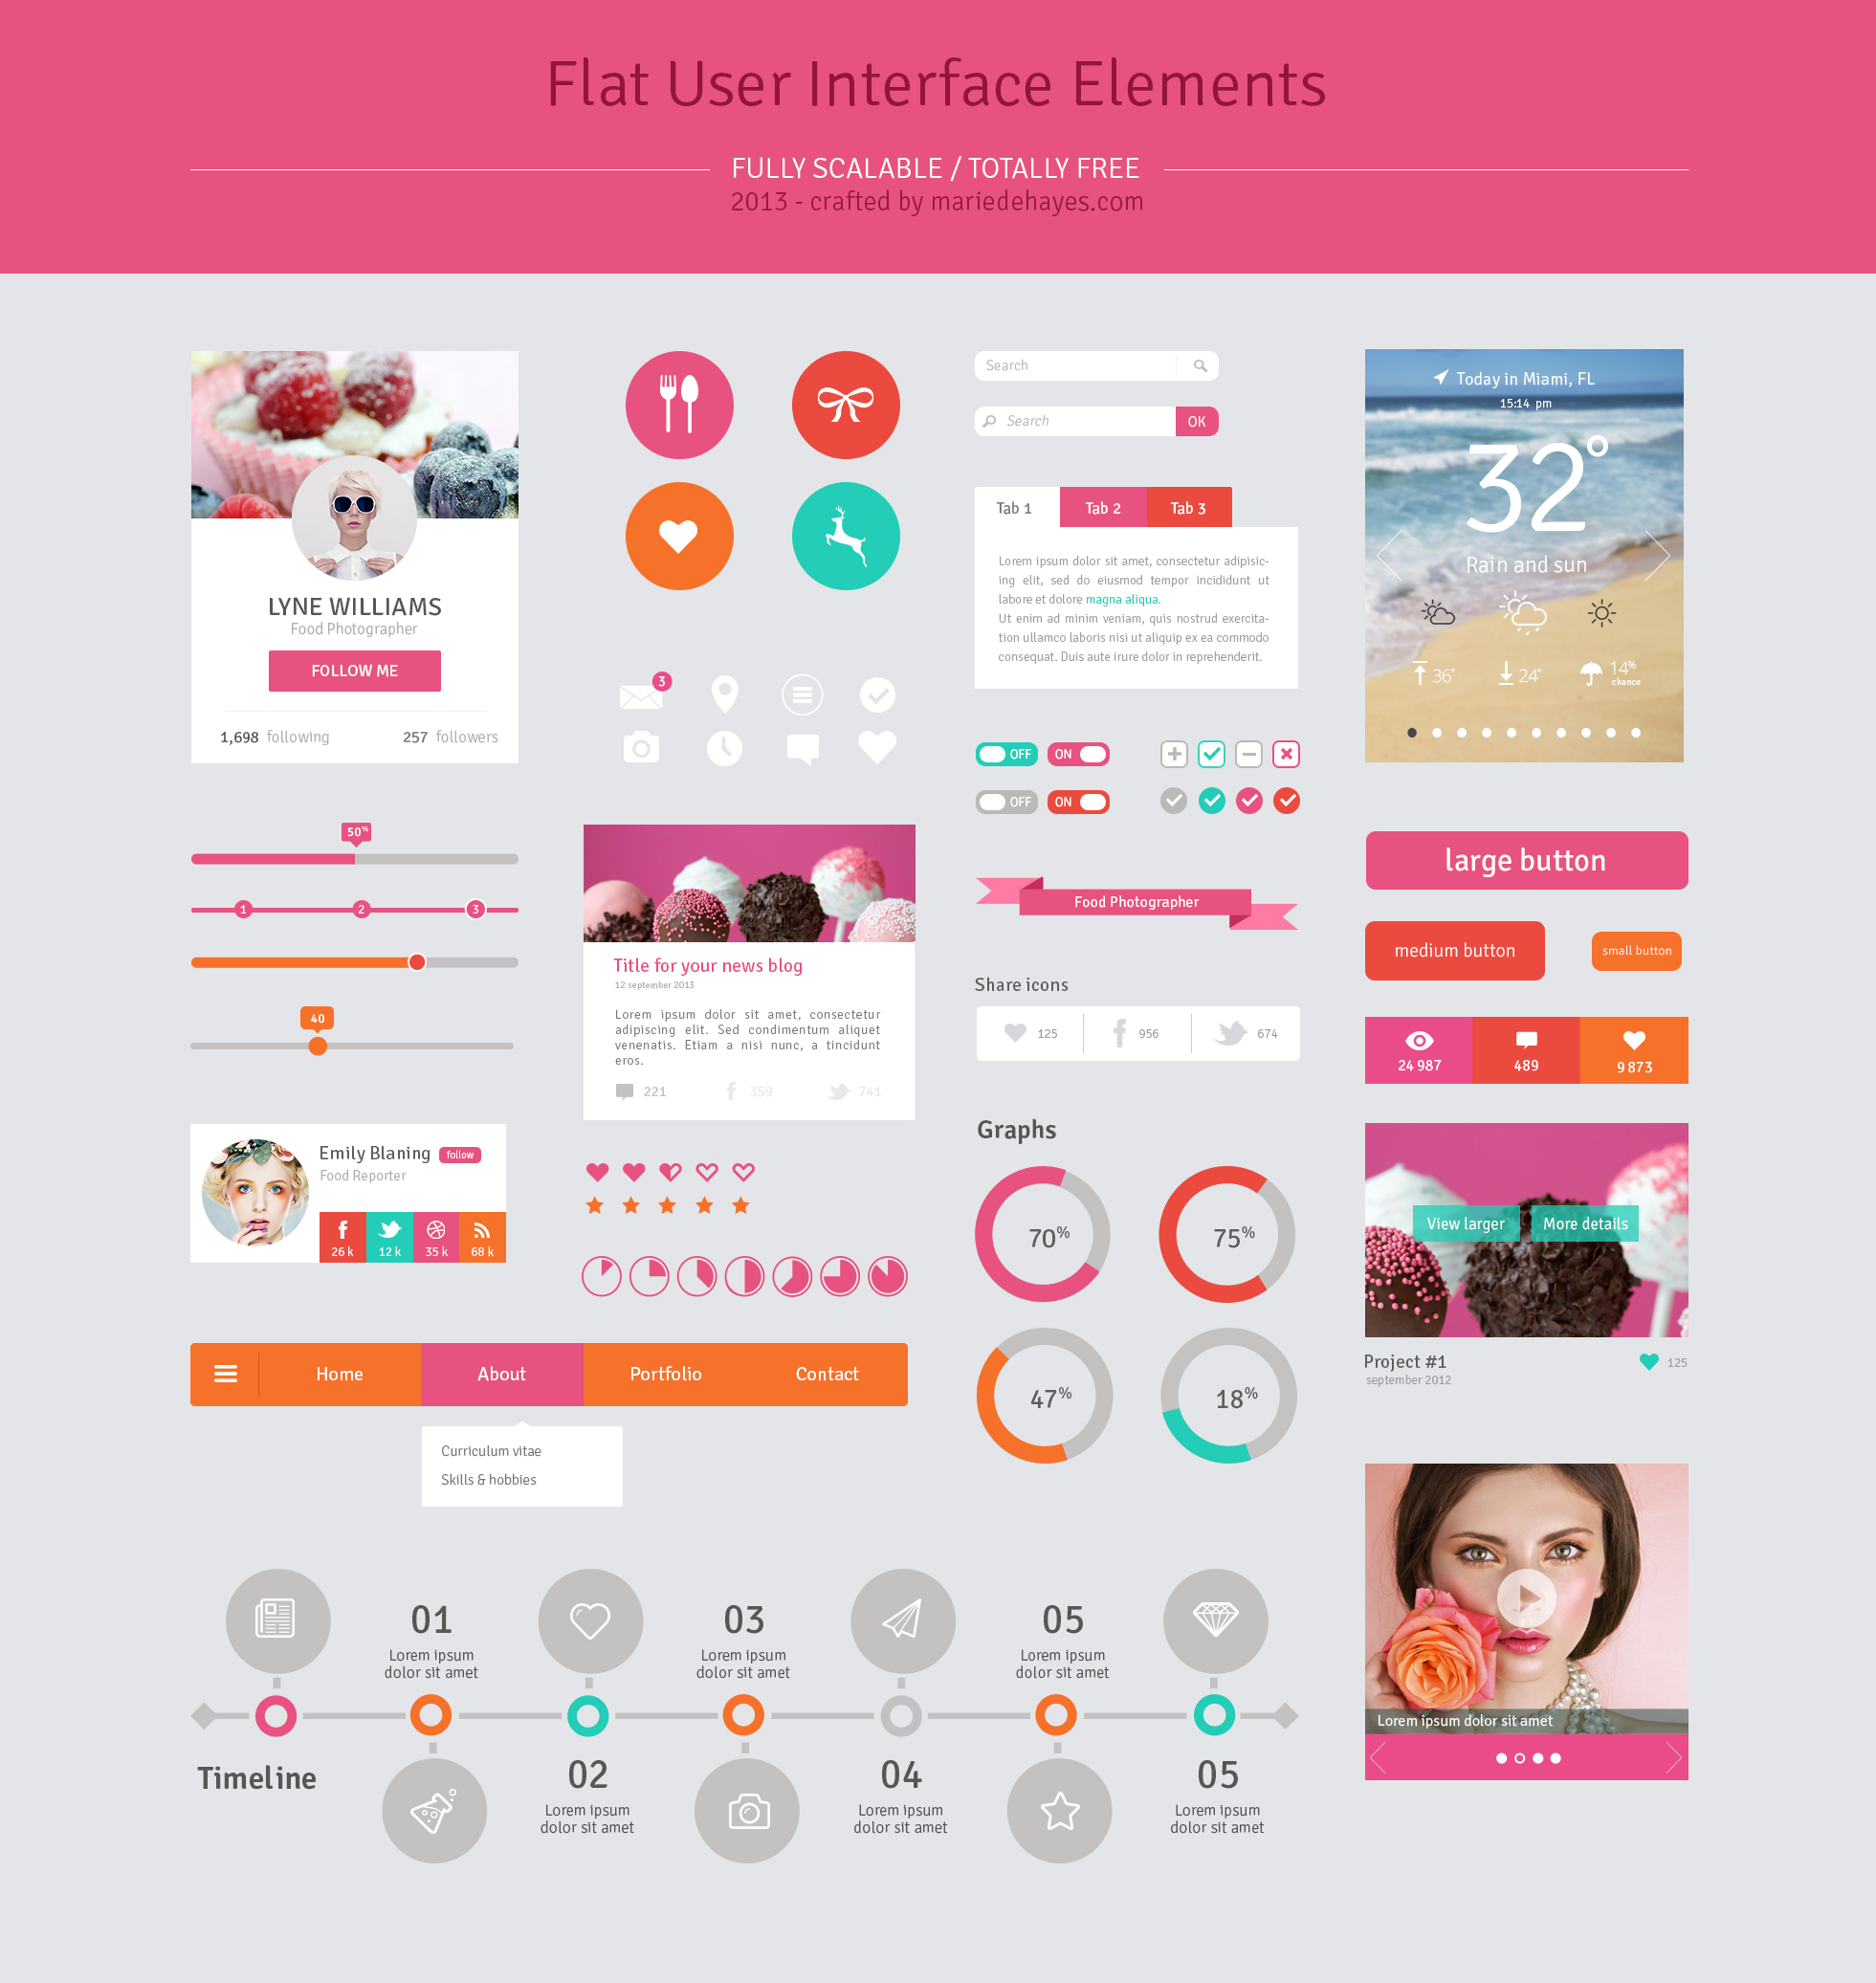 19 UI Design Elements Images